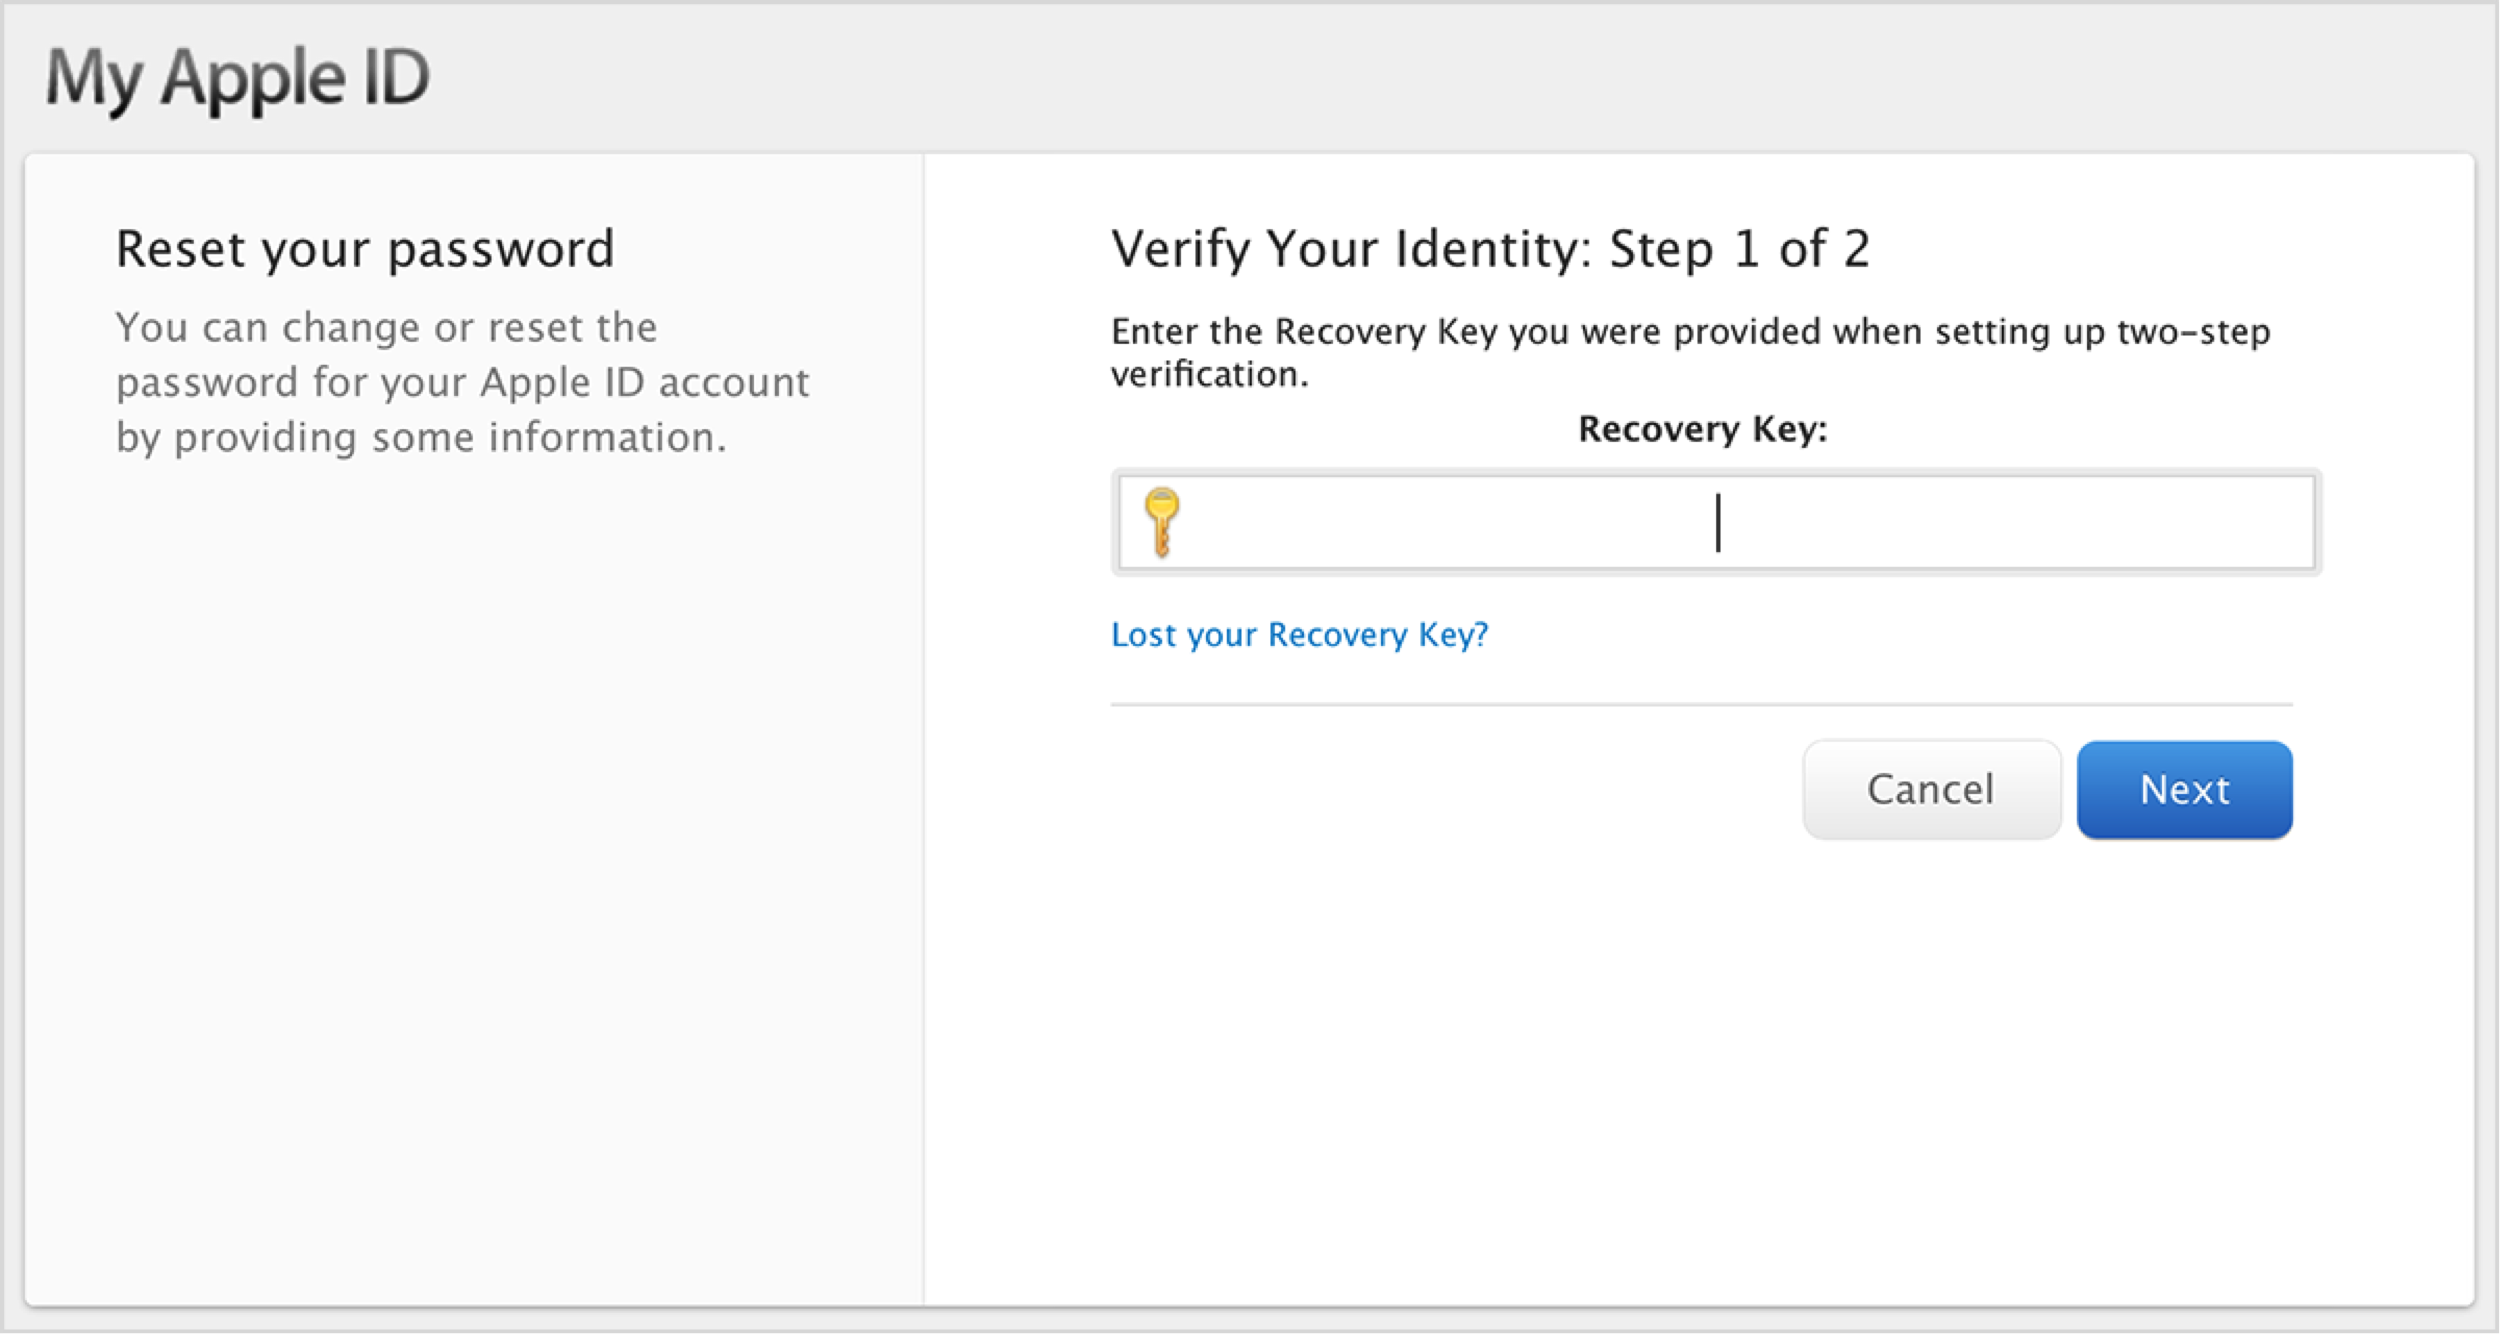 how to change apple security questions if forgotten